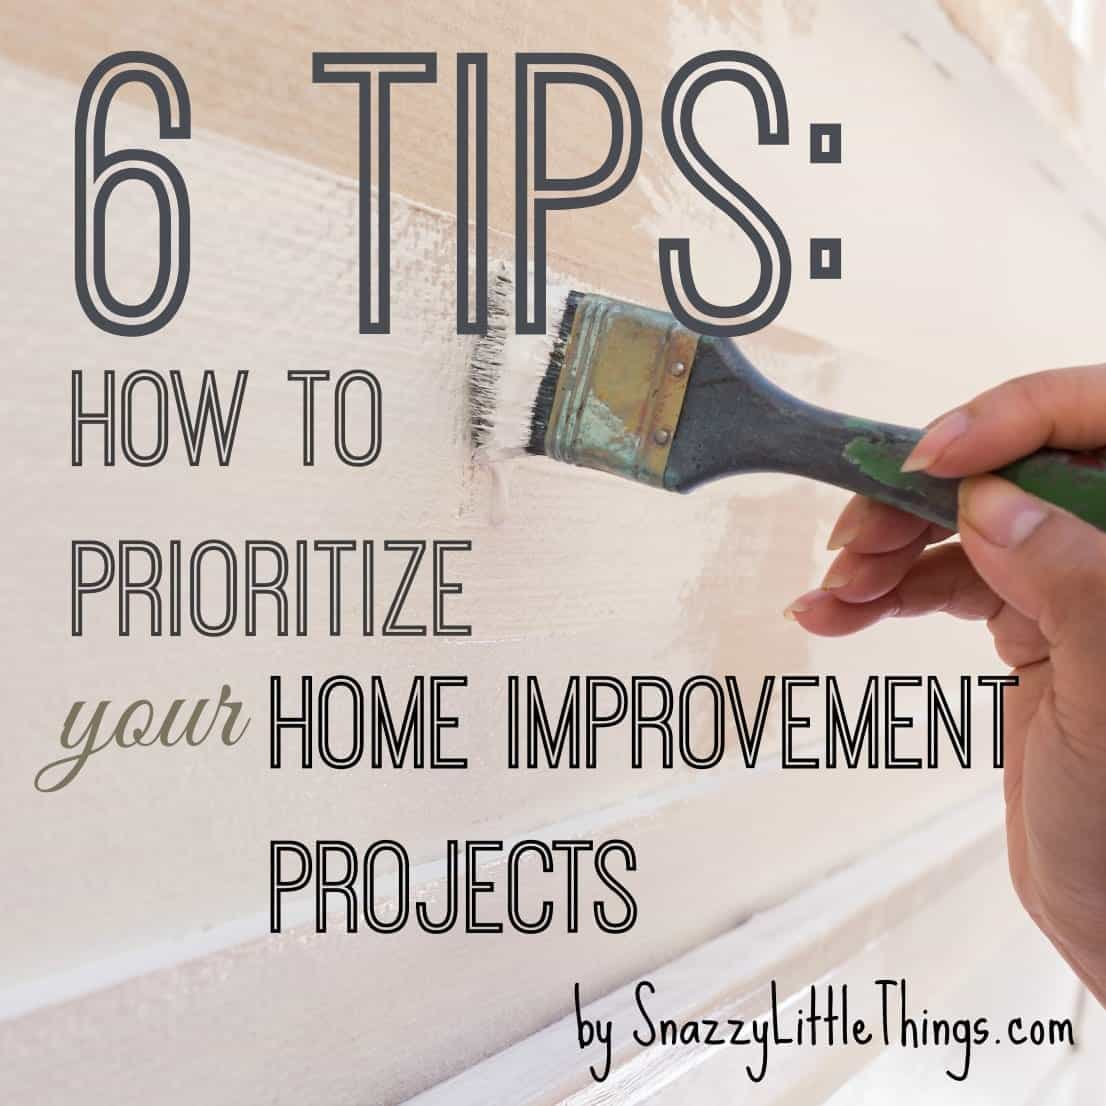 6 Tips How to Prioritize Home Improvement Projects